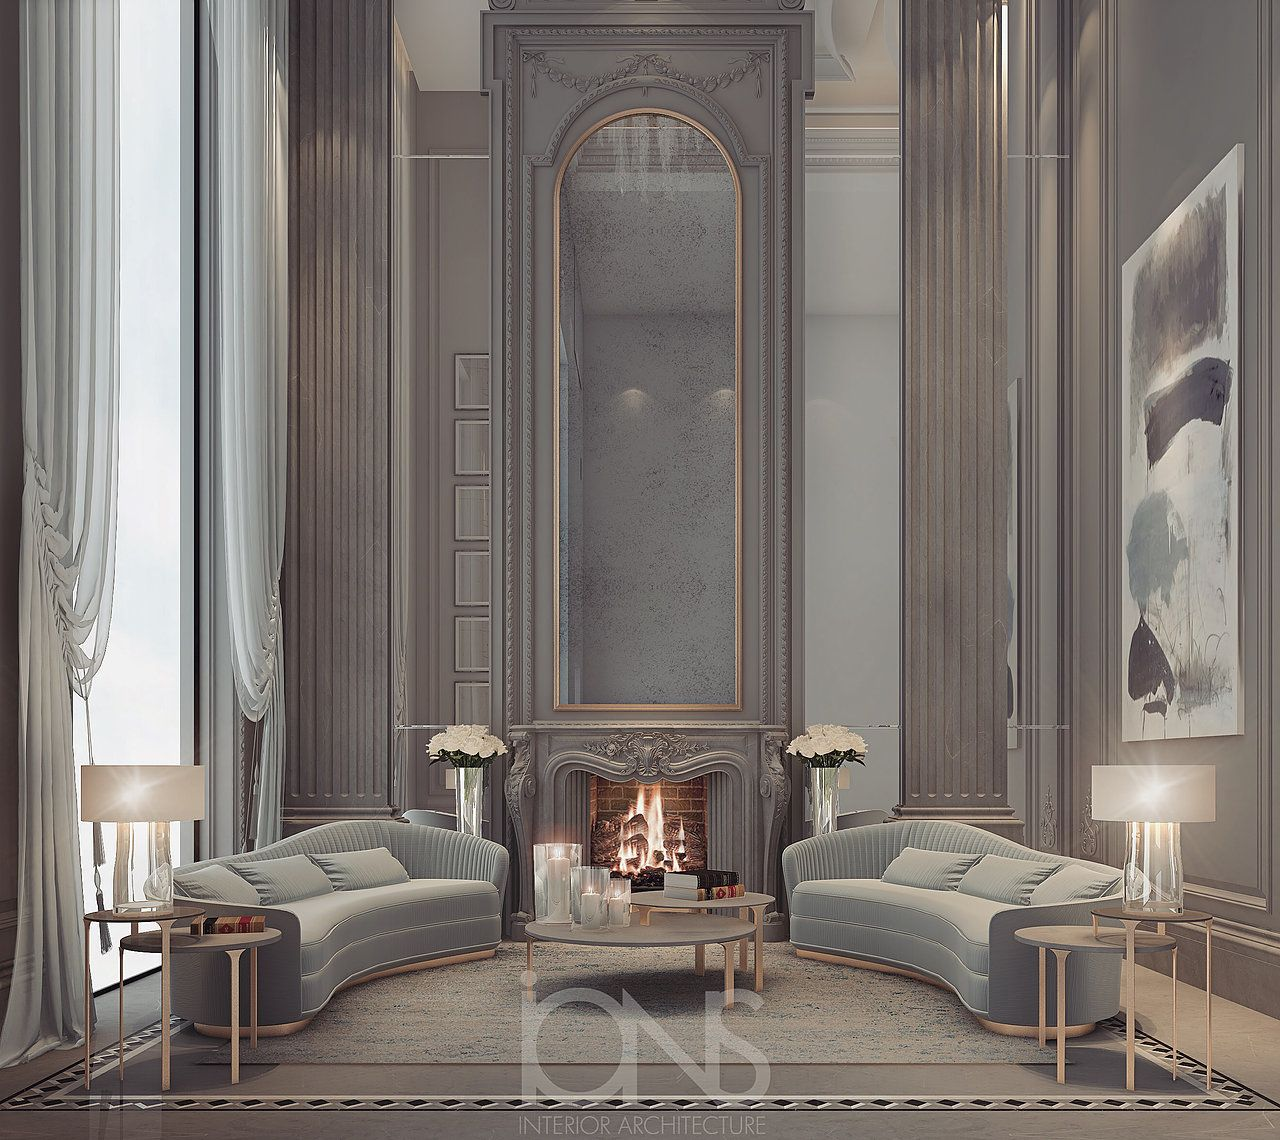 Majestic Interiors An Interior Designing Firm: Luxury Interior Design Dubai...IONS One The Leading